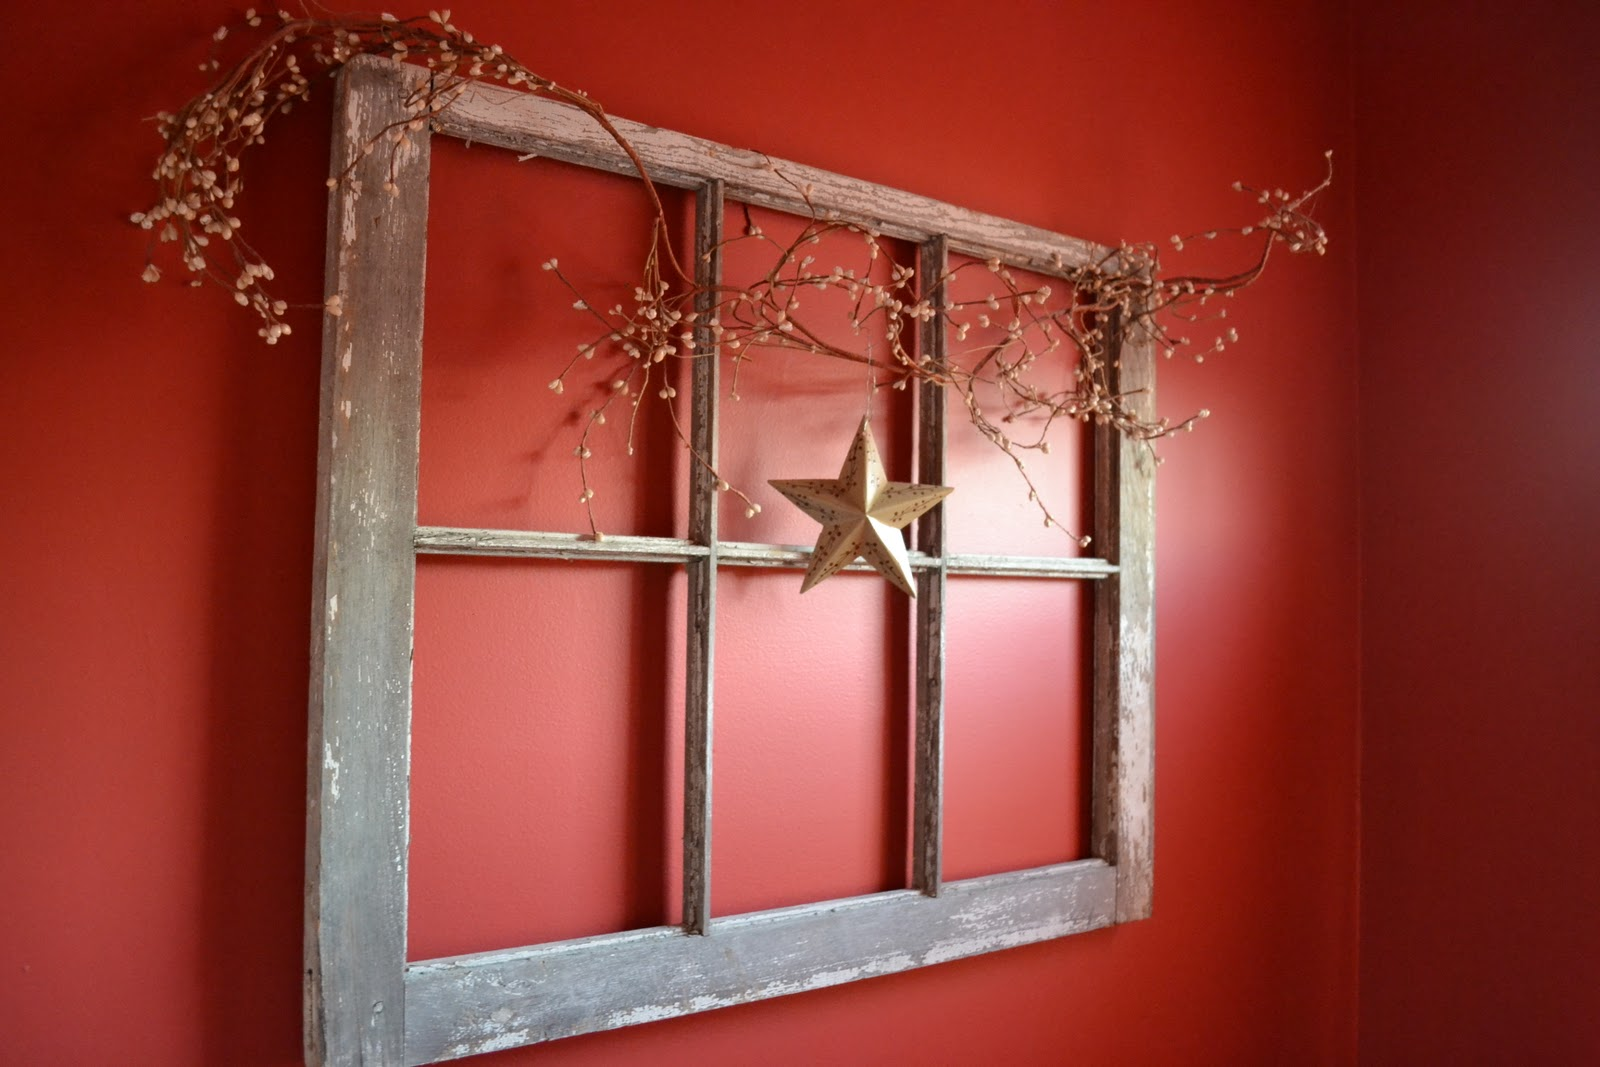 Thrifty Decorating Old Windows As Wall Decor